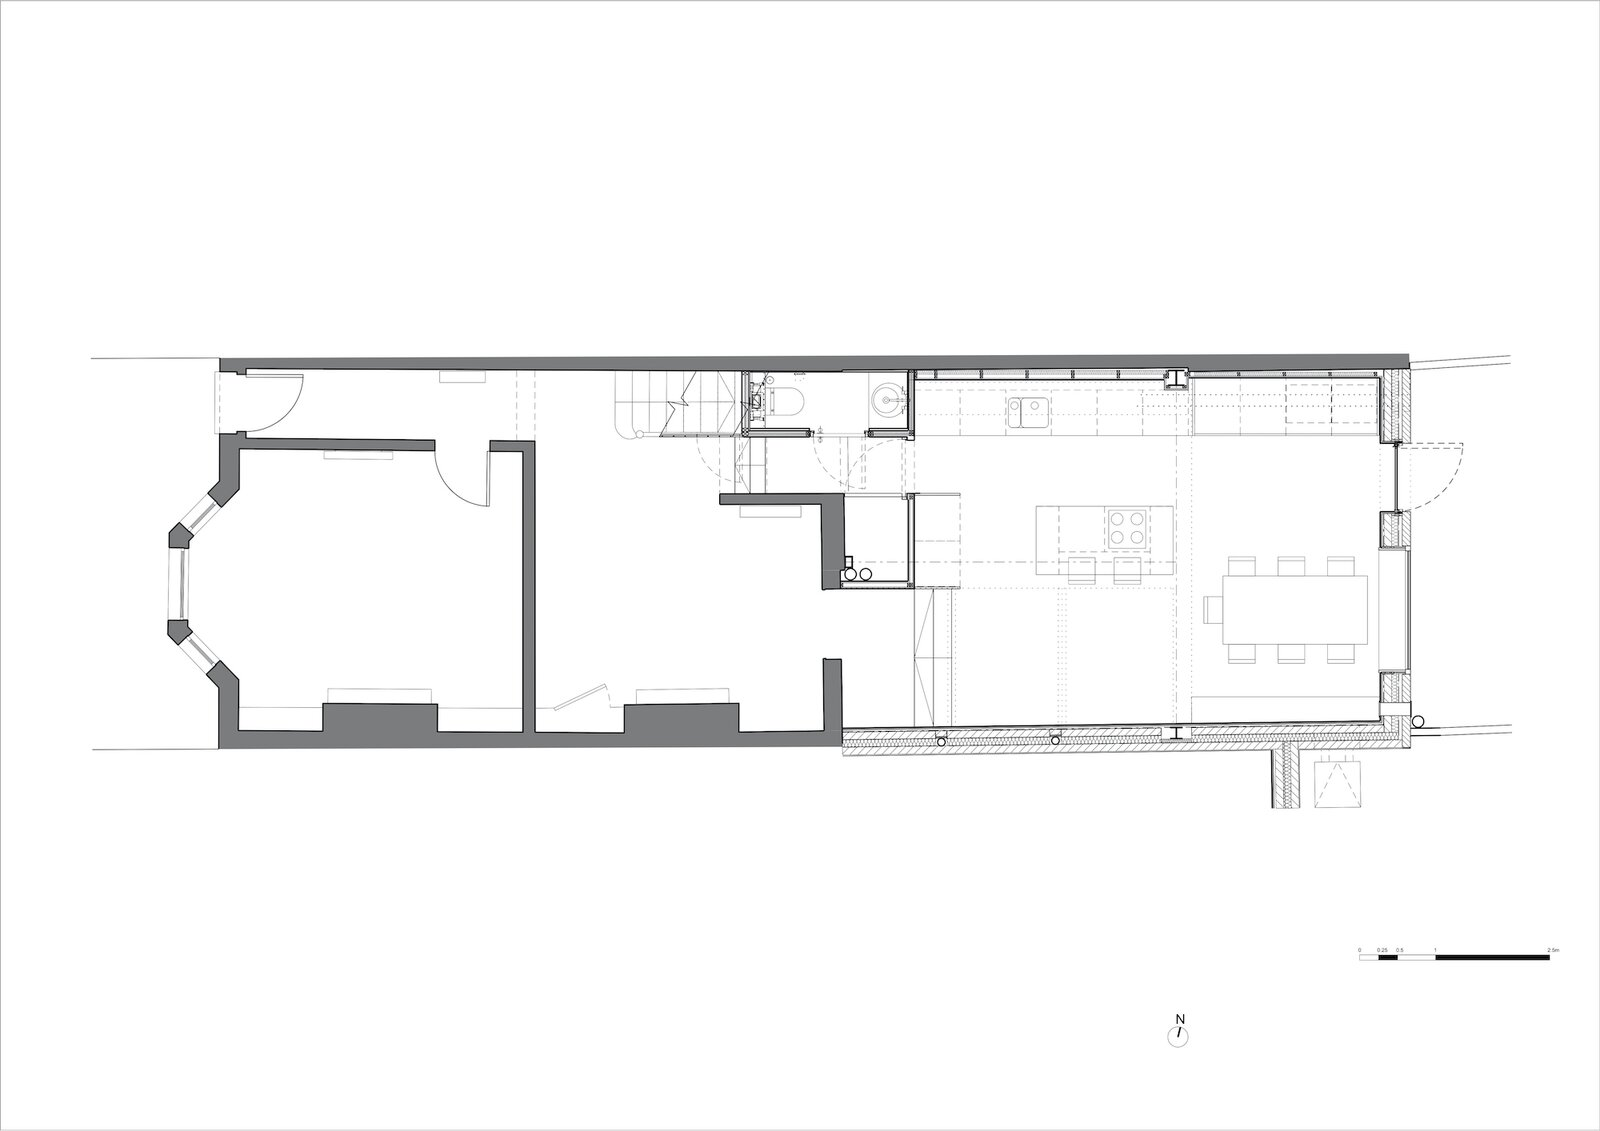 Ground floor plan of Zigzag Roof House by 4 S Architecture after the extension